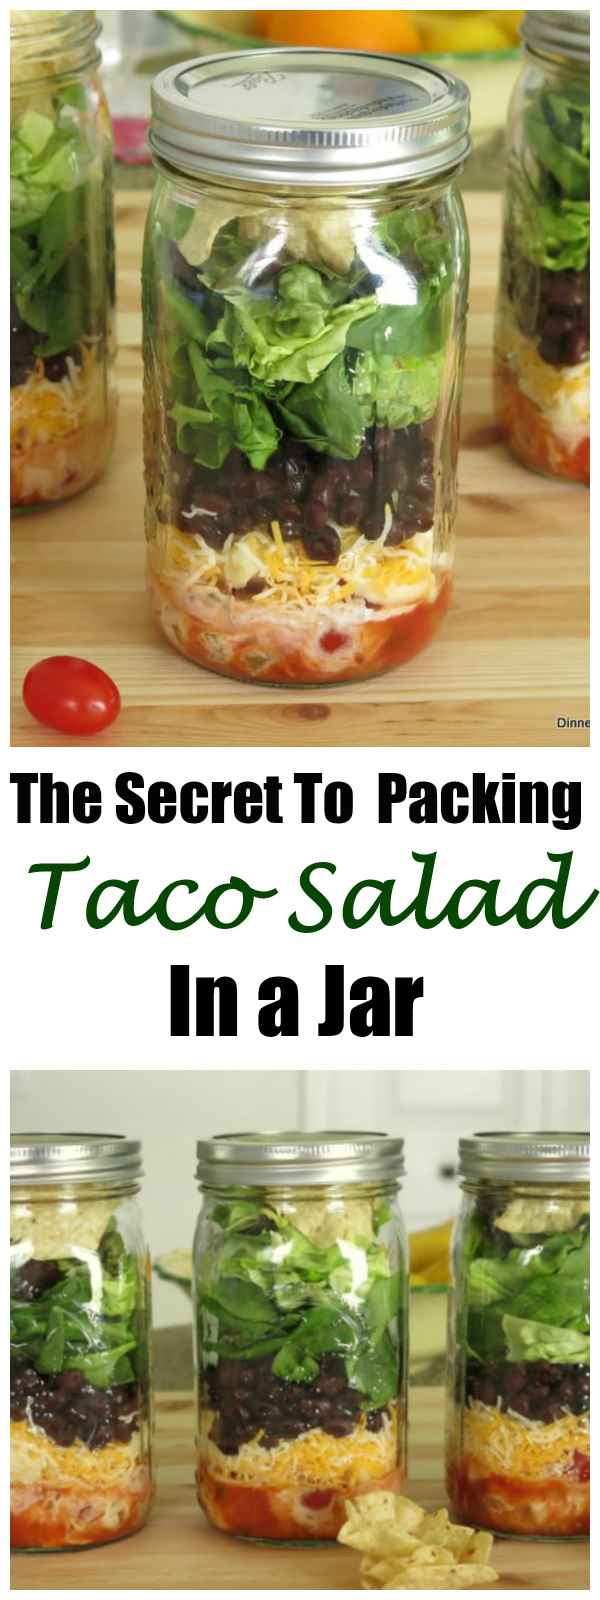 The Secret to Packing Taco Salad in a Jar